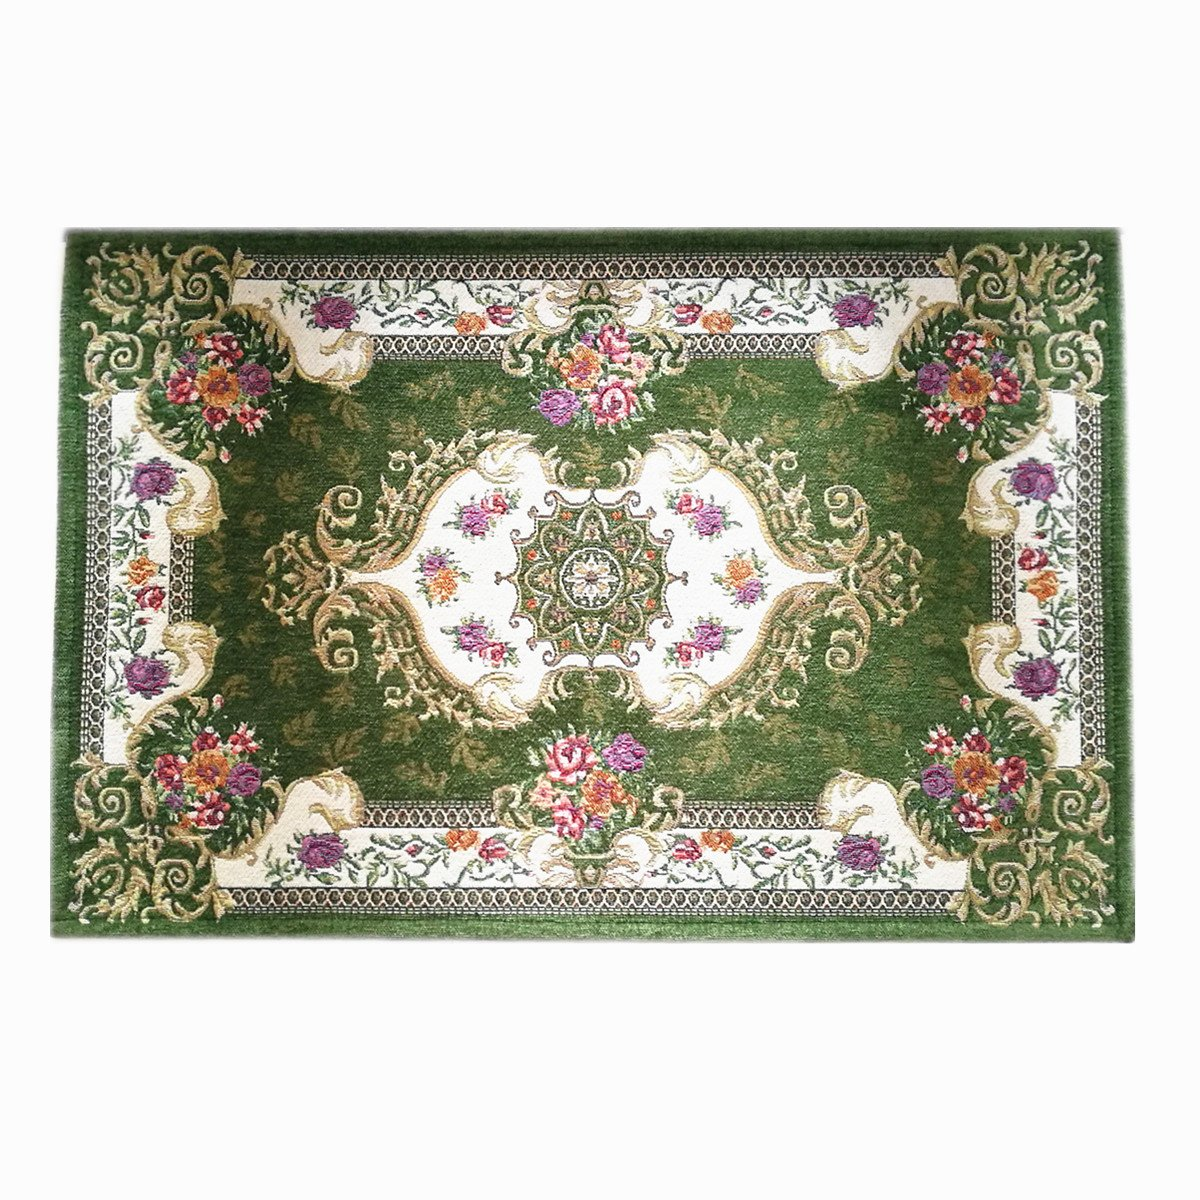 """Hihome Retro Green Floral Door Rugs Vintage Doormats Floral Design, Machine Washable, Kitchen Dining Living Bathroom Entry Rugs Inside Rugs(19.7""""x31.5, Green)"""